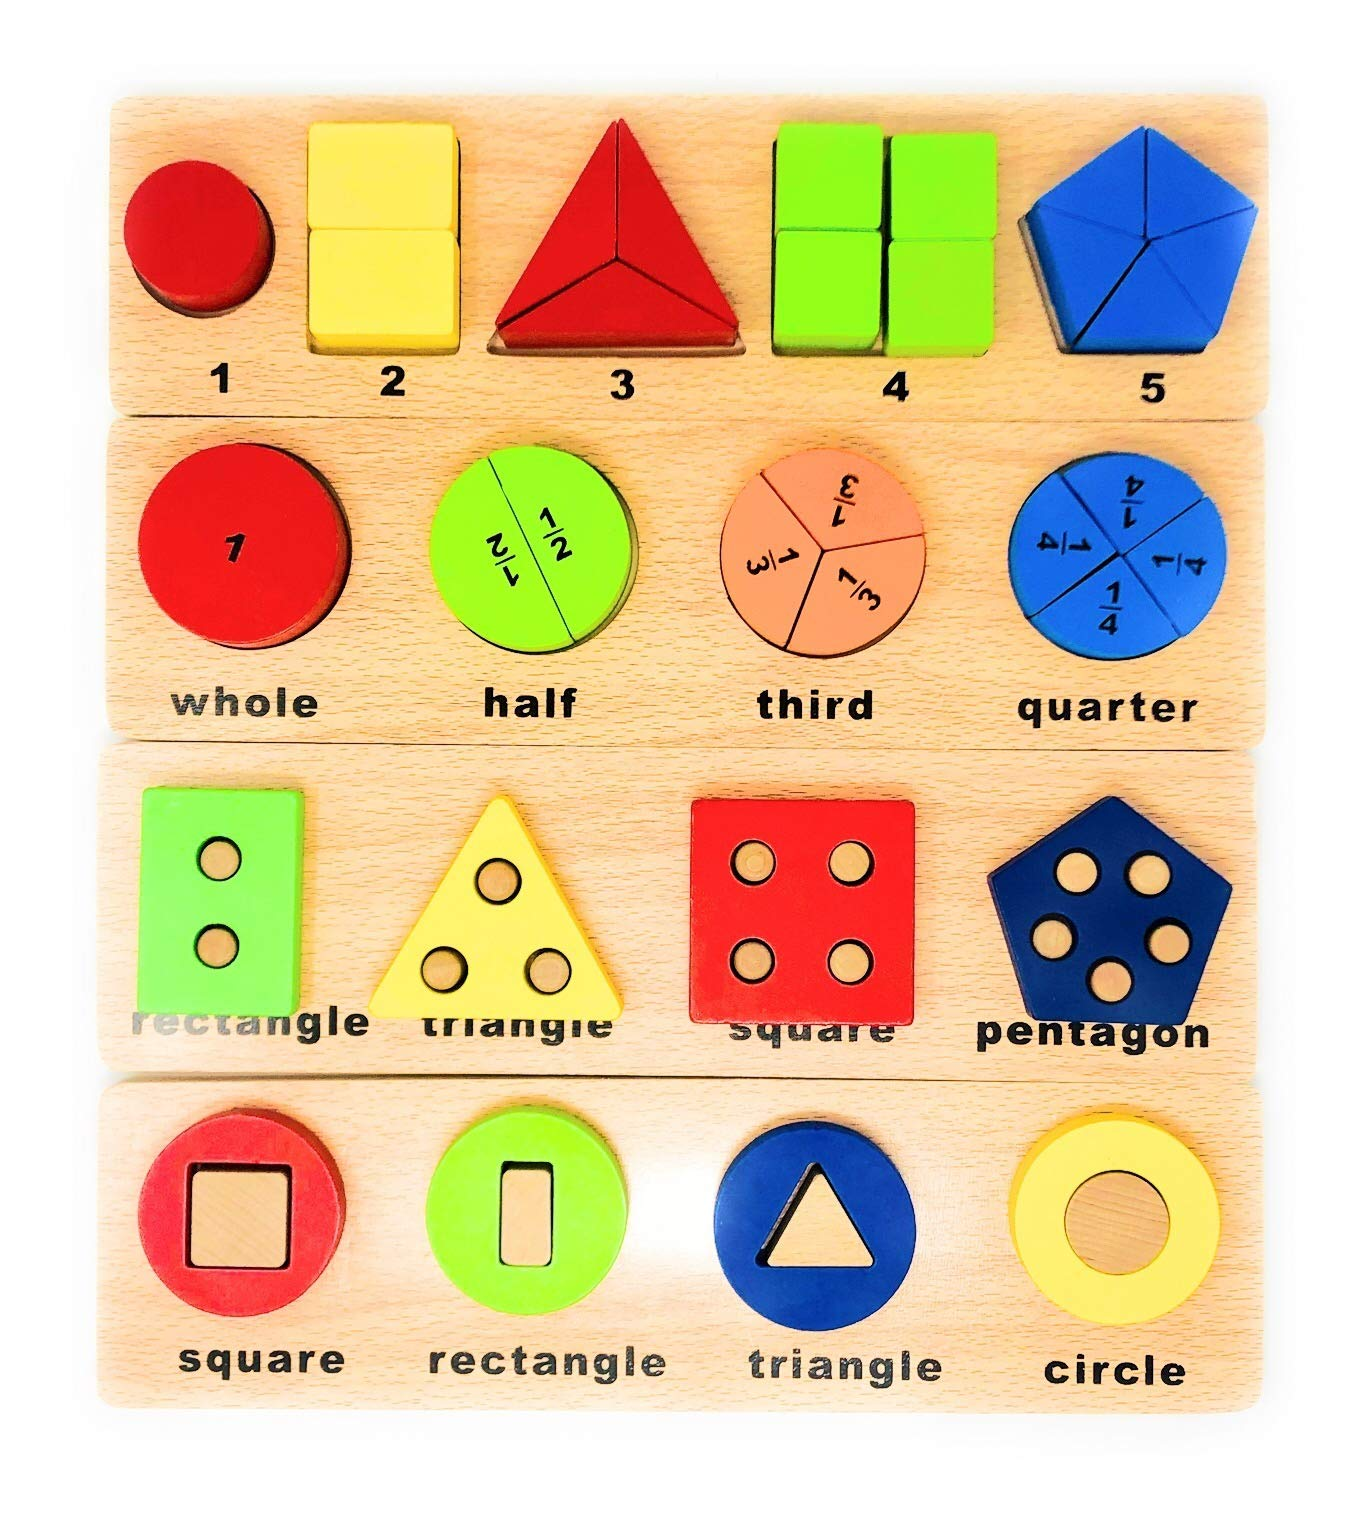 Speechteach Wooden Block Montessori Toys for Toddlers That Teach Basic Developmental and Educational Concepts. Early Educational Play Therapy Toys for 2 to 5 Year olds. Set of 4, 14'' Learning Toys.